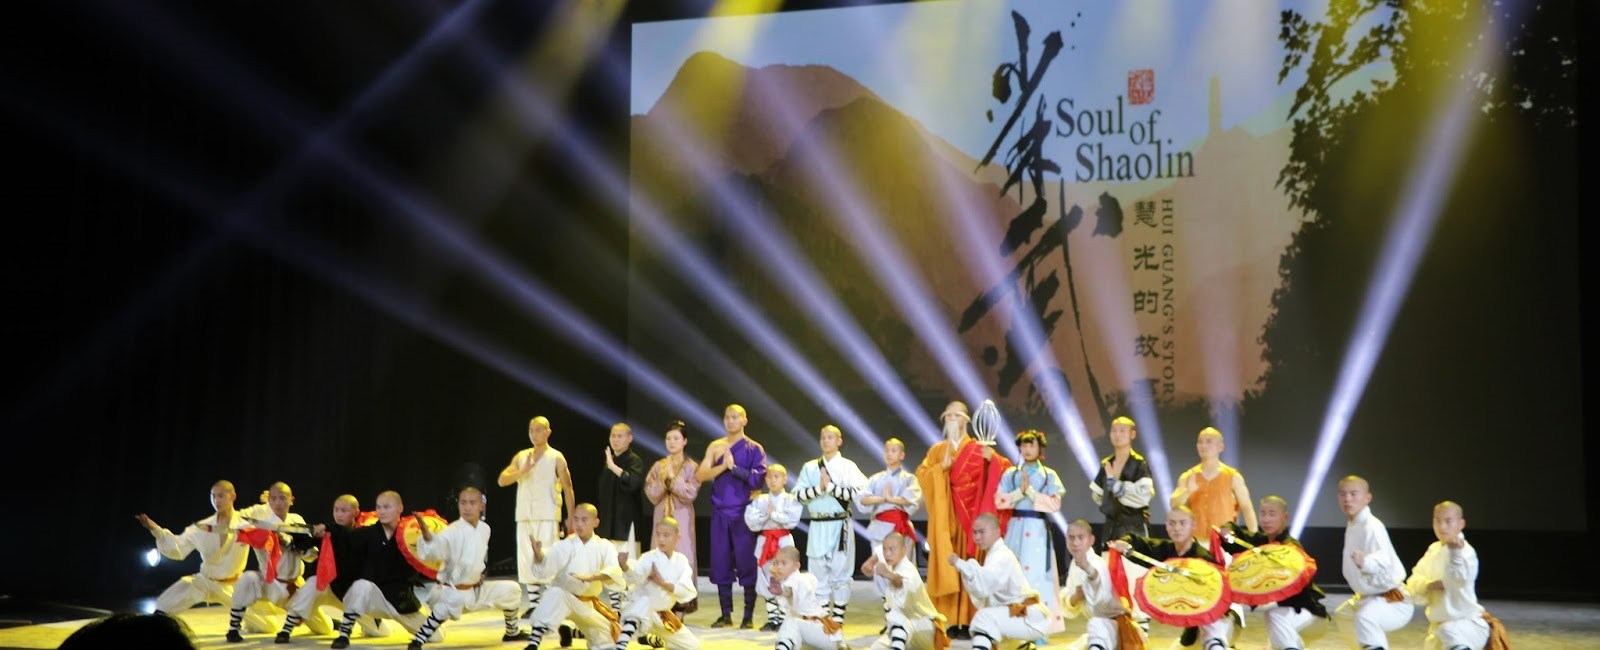 Soul Of Shaolin @ Genting International Showroom